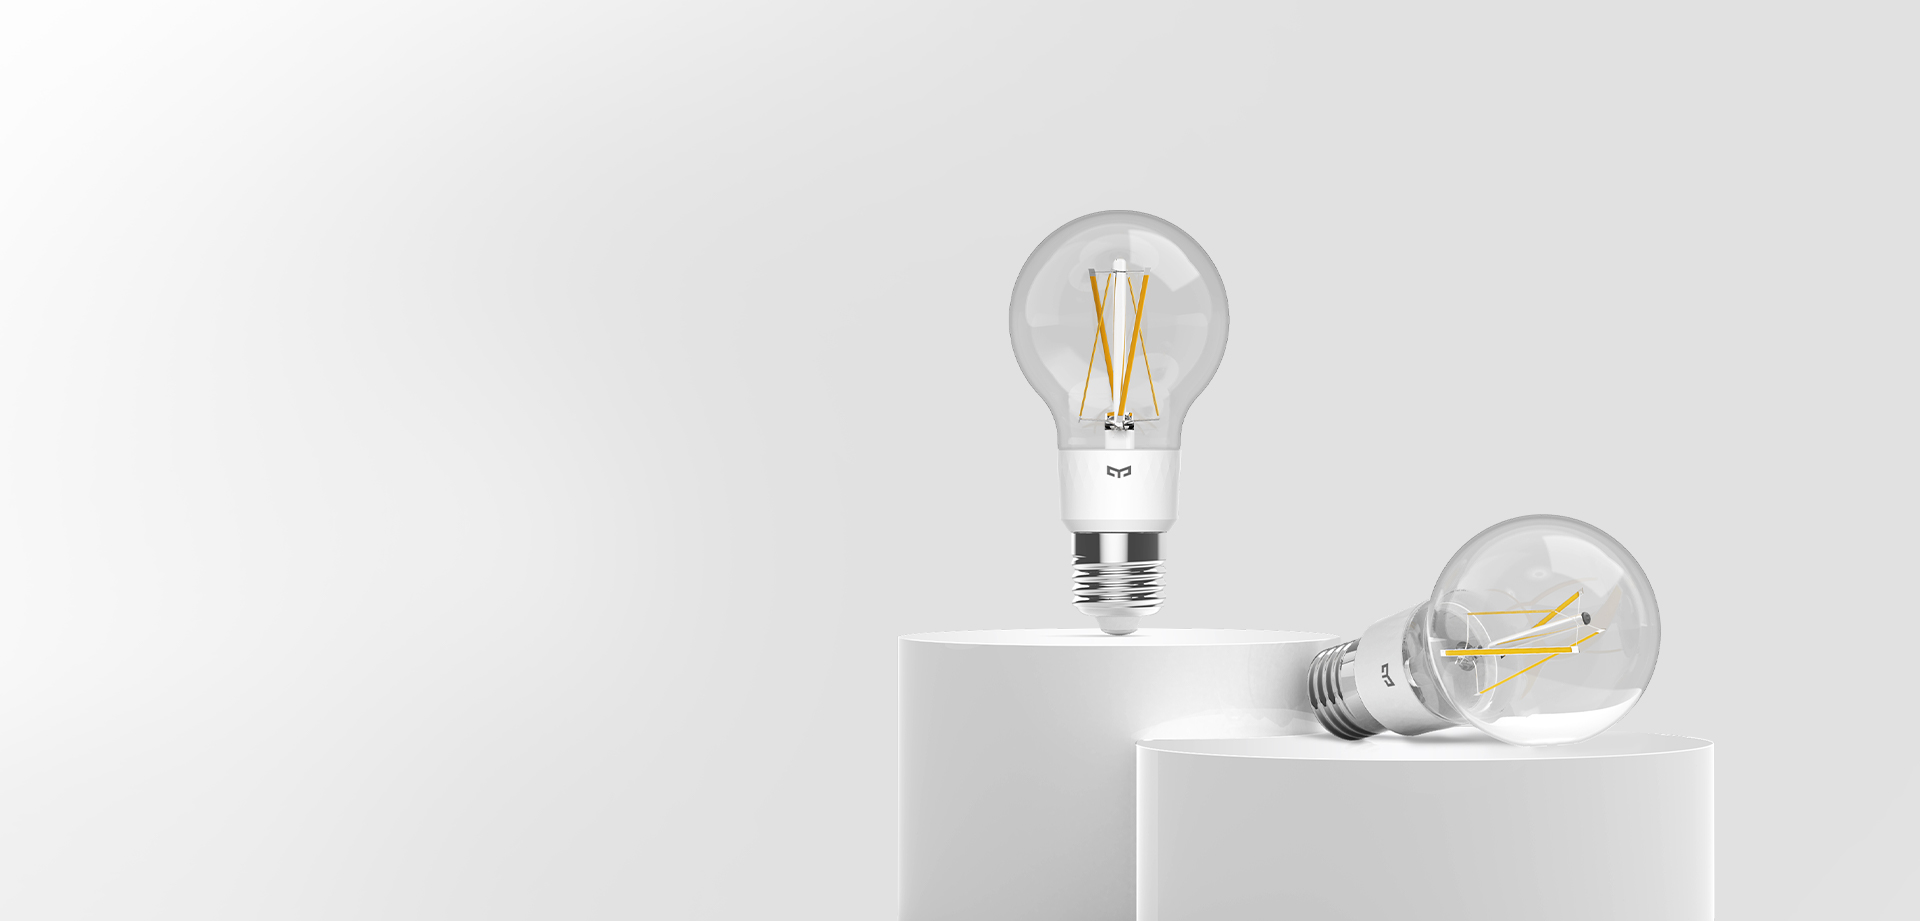 Smart LED Filament Lampe » Grundbeleuchtung